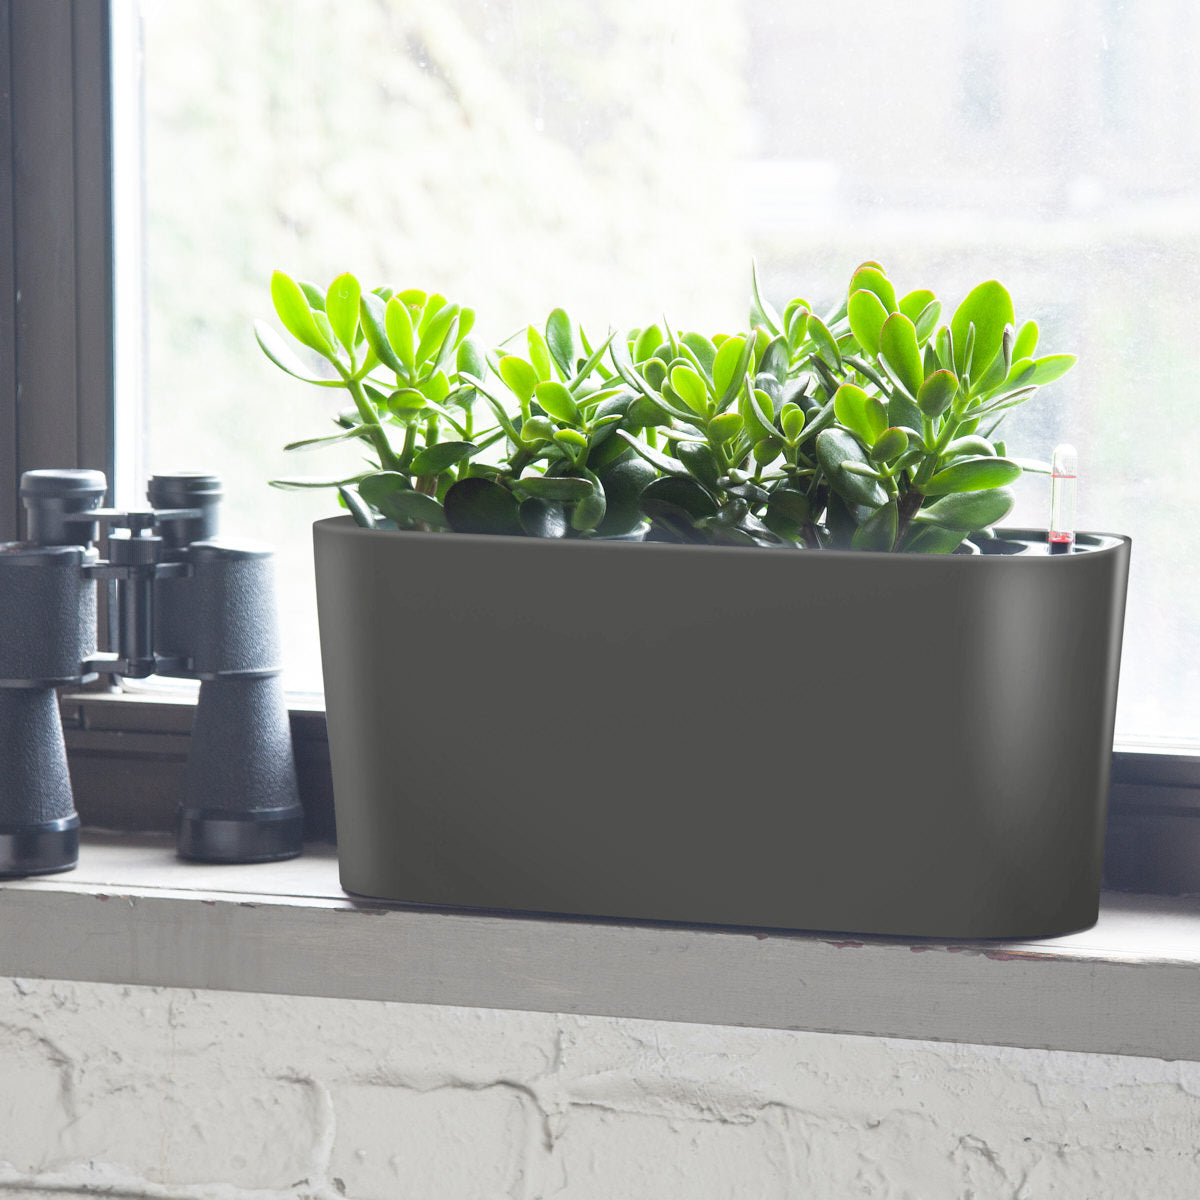 Jade Plant Windowsill Charcoal Metallic